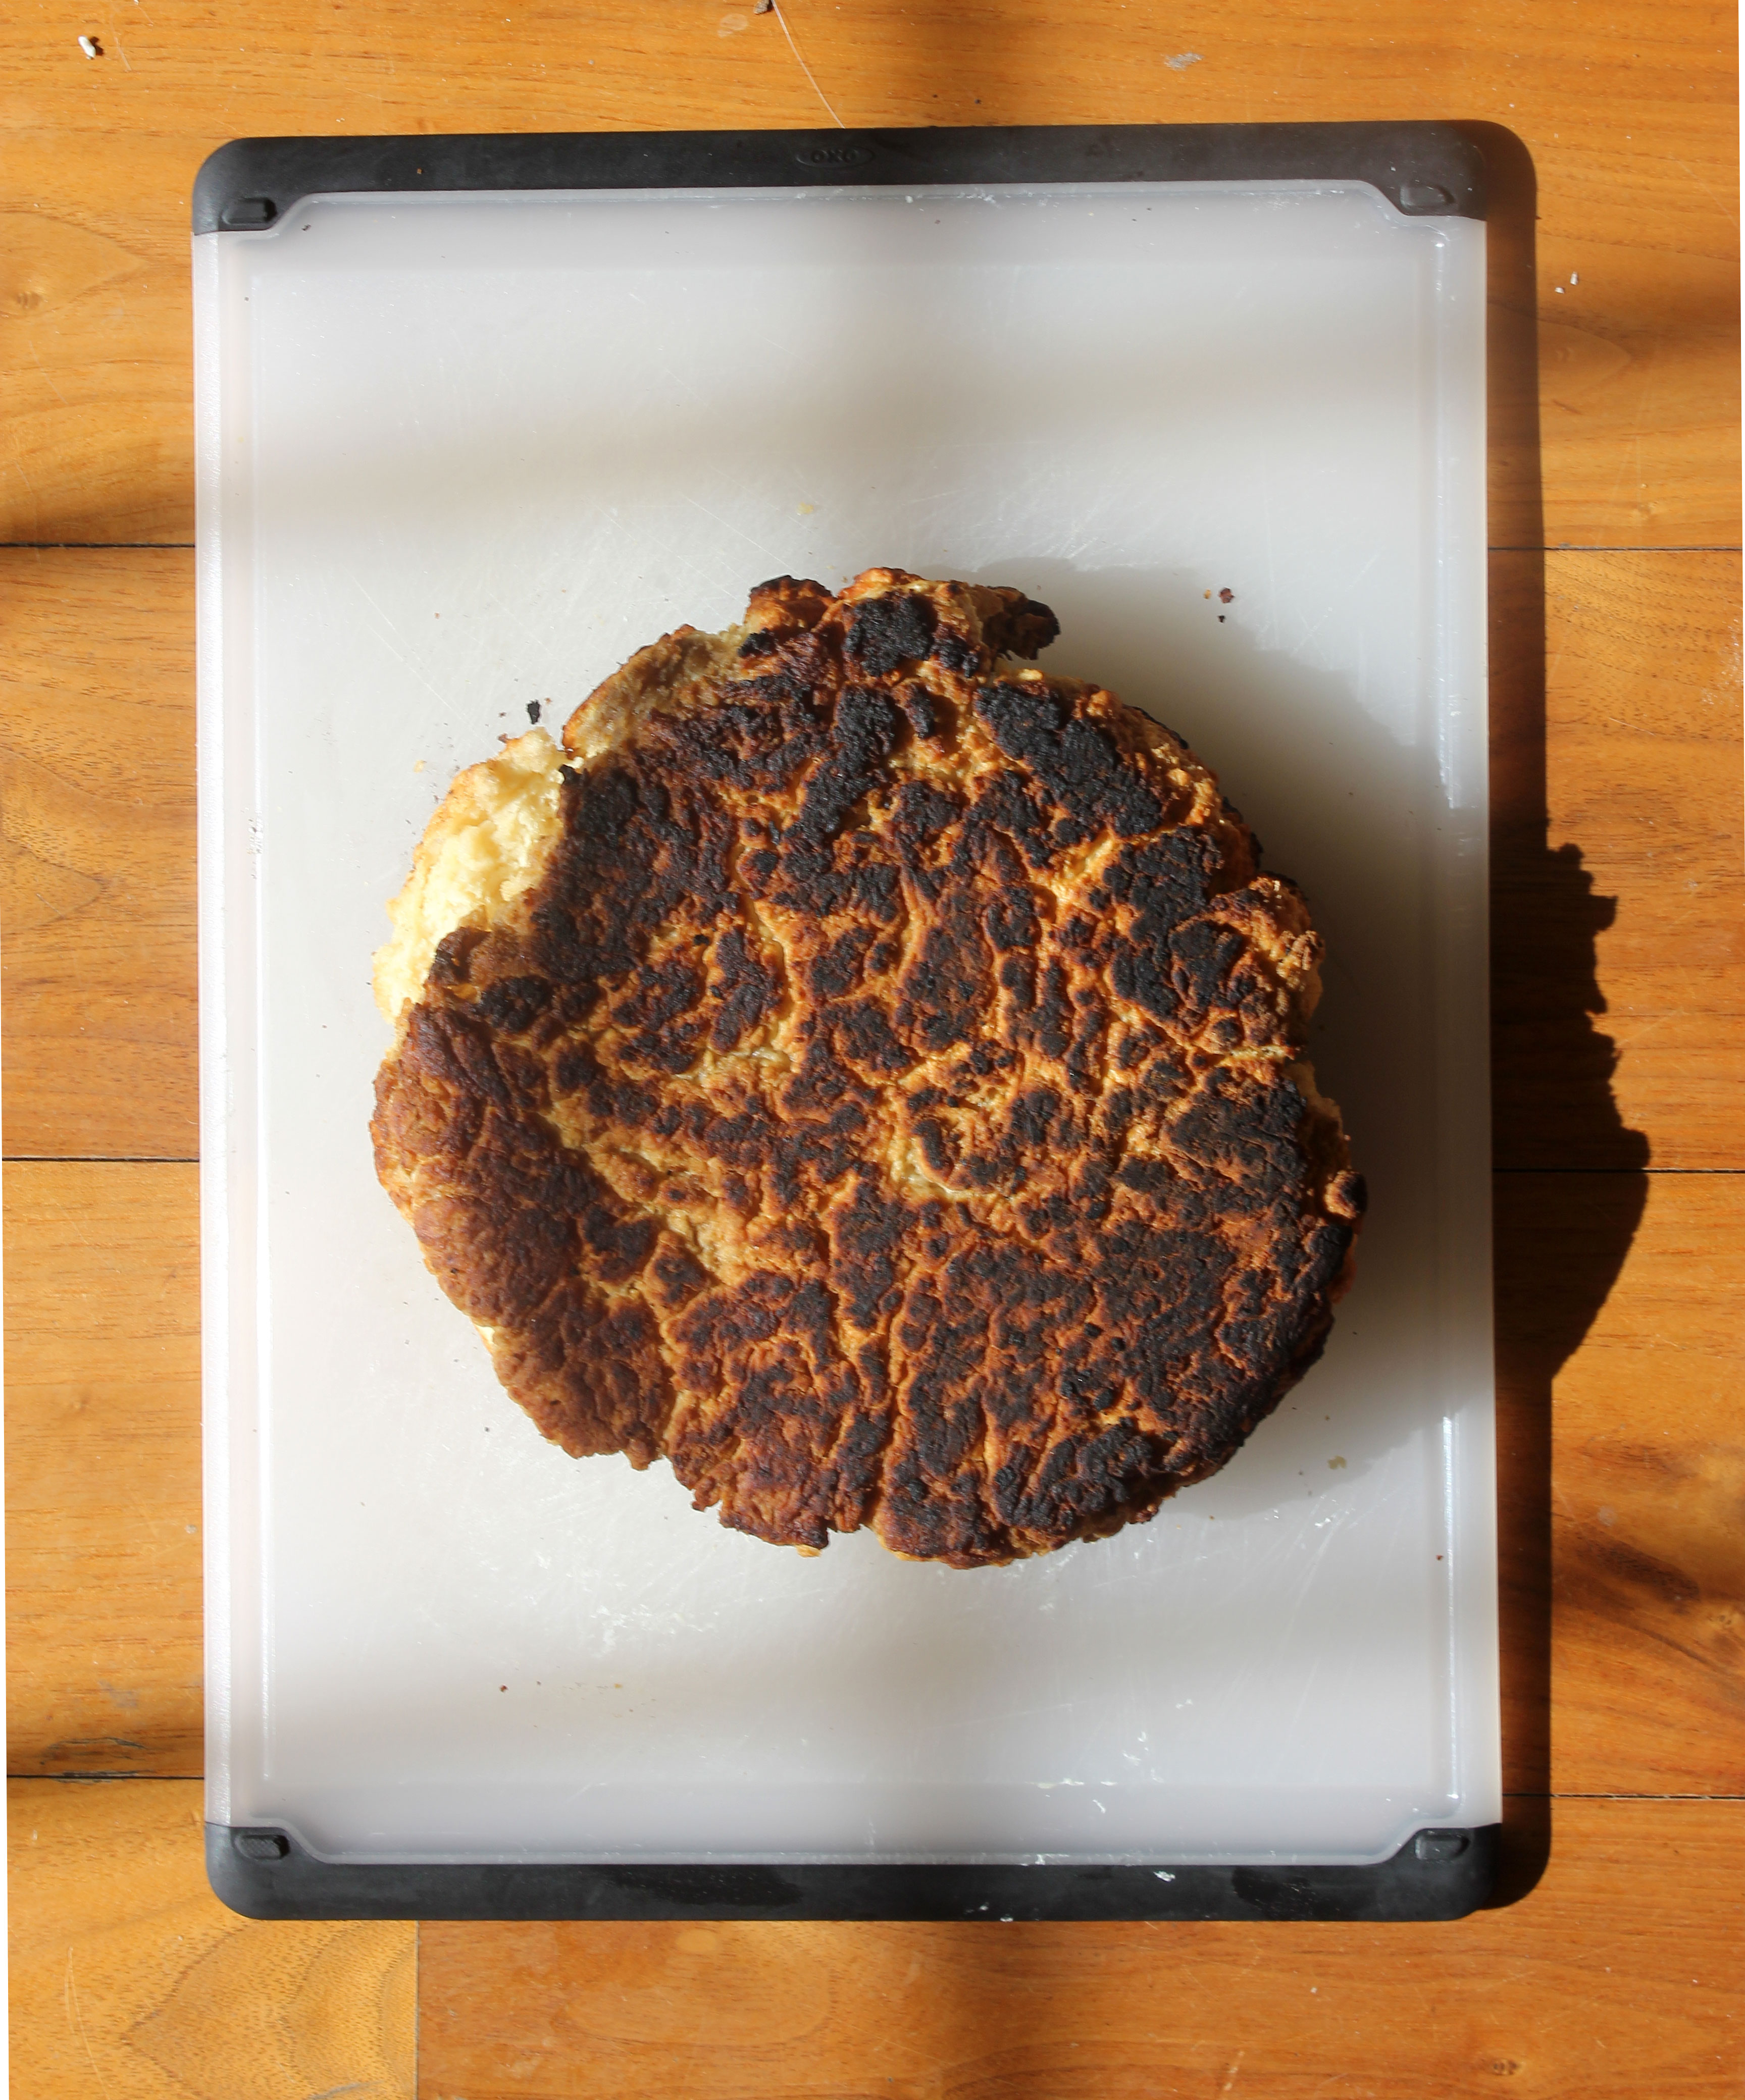 TBT Recipe: Bannock Bread from Home Made Winter